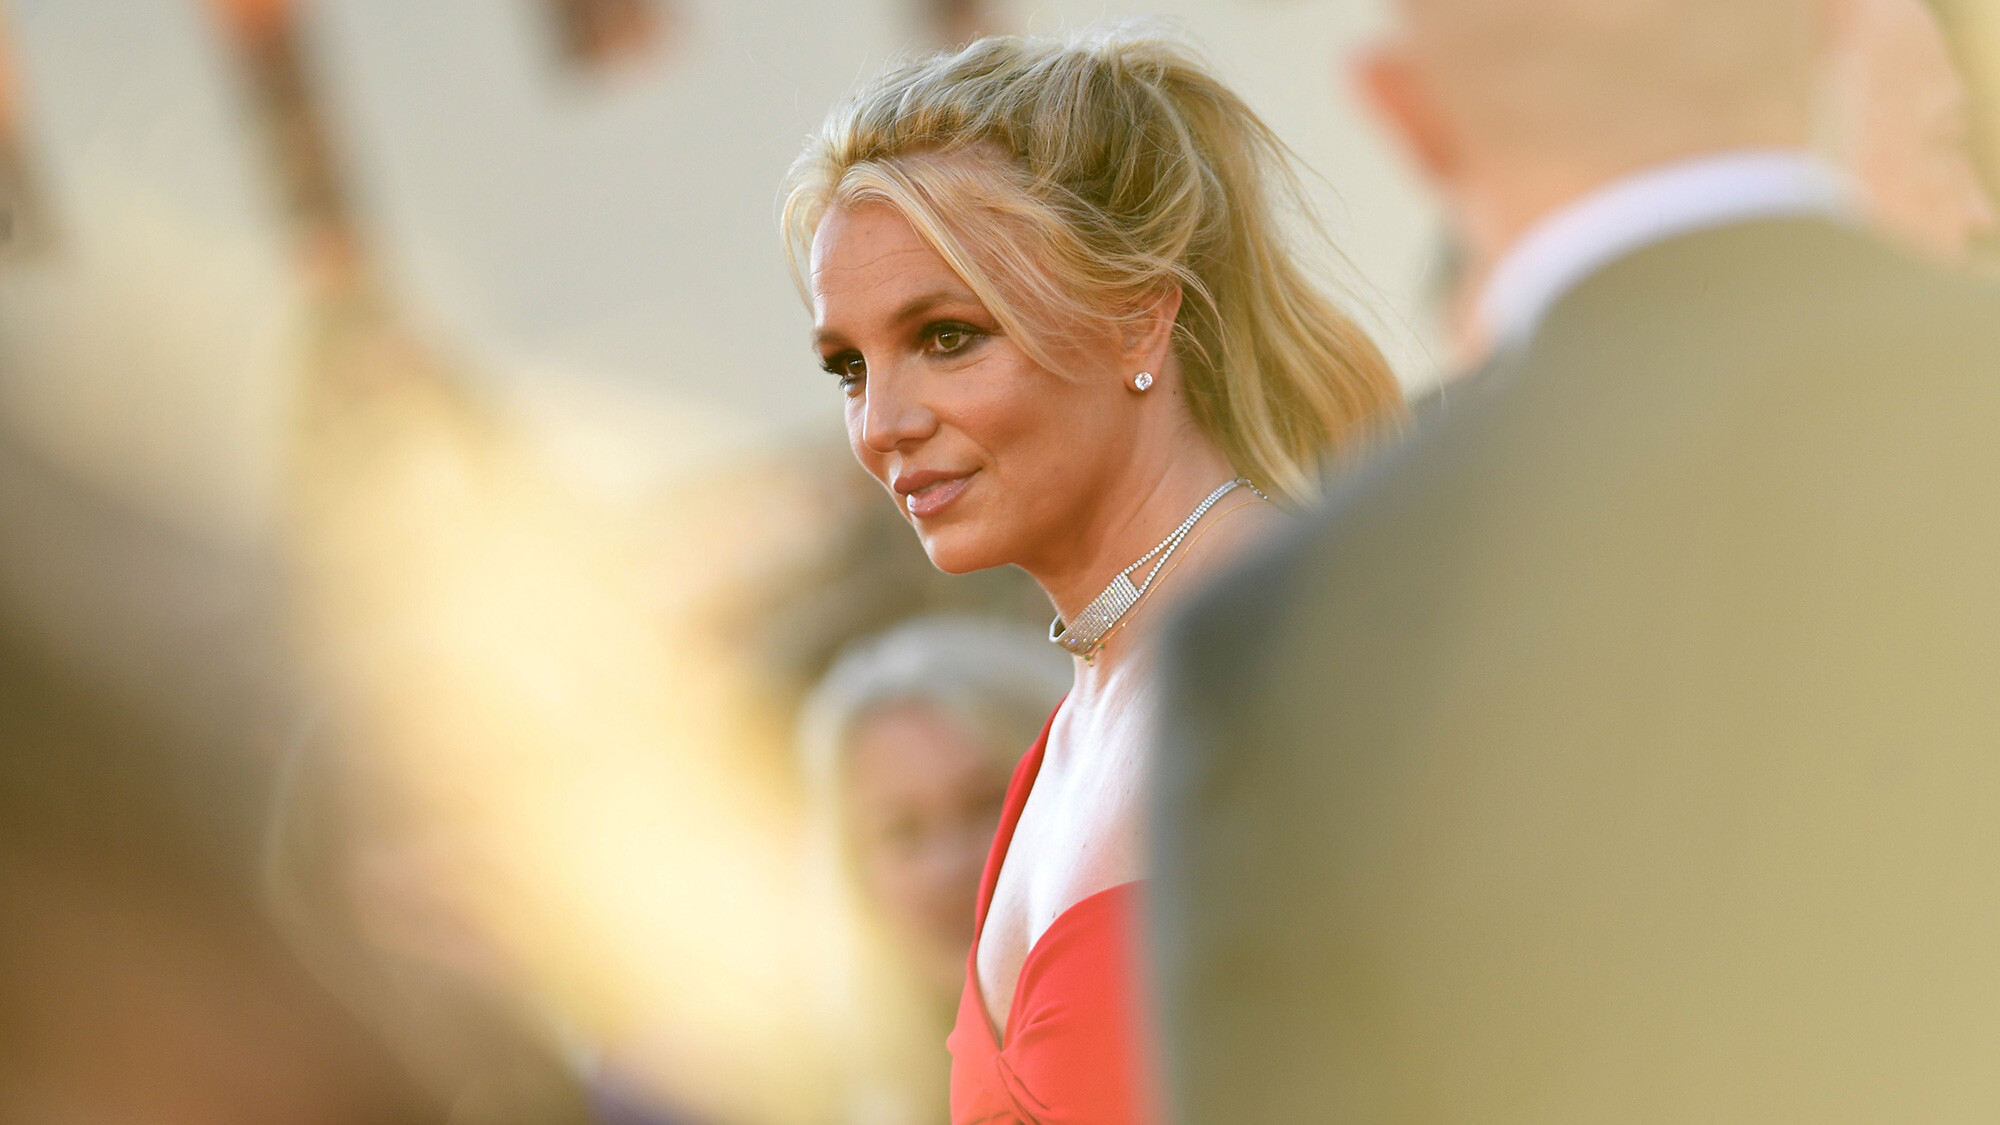 Attorney for Britney Spears requests earlier court date to remove her father as co-conservator